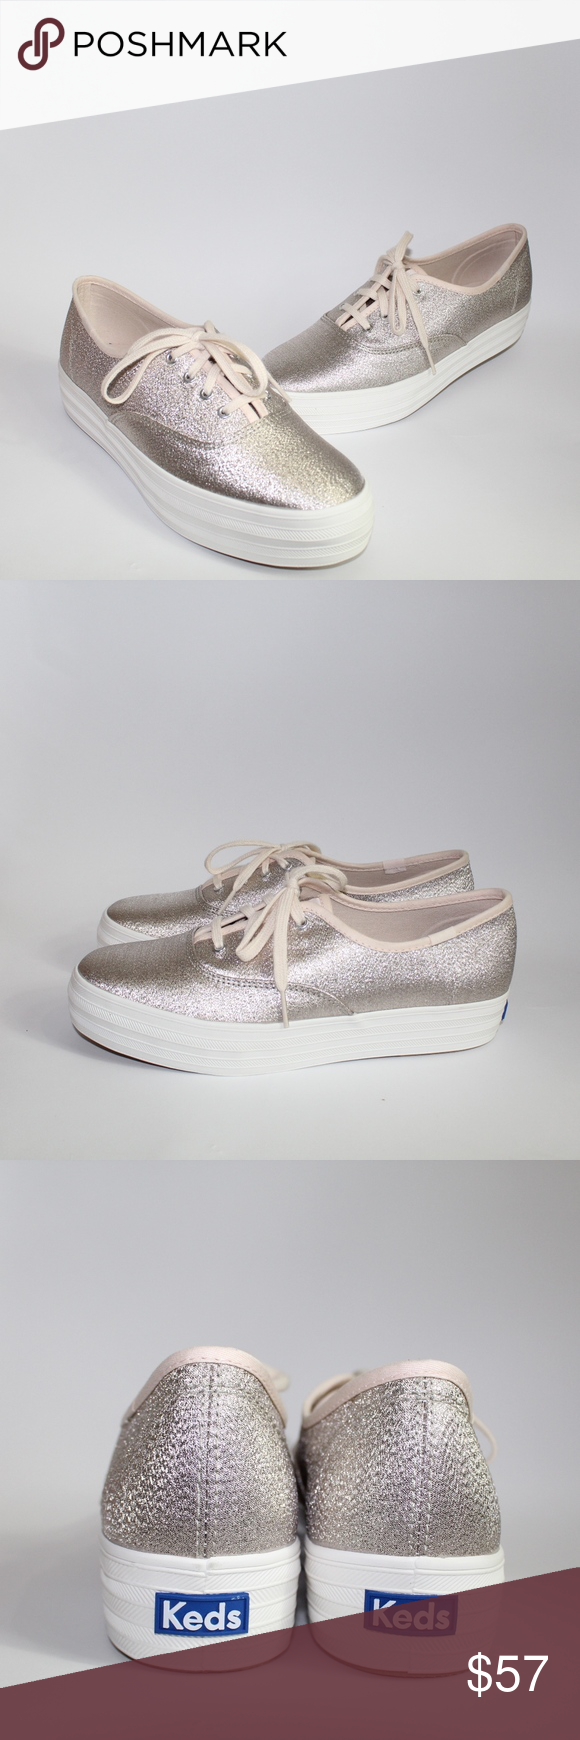 4fd4f4ed97b Keds Champagne Triple Lurex Shimmer Sneakers 8.5 New without box. Platform  shimmer sneaker from Kids. Keds Shoes Athletic Shoes